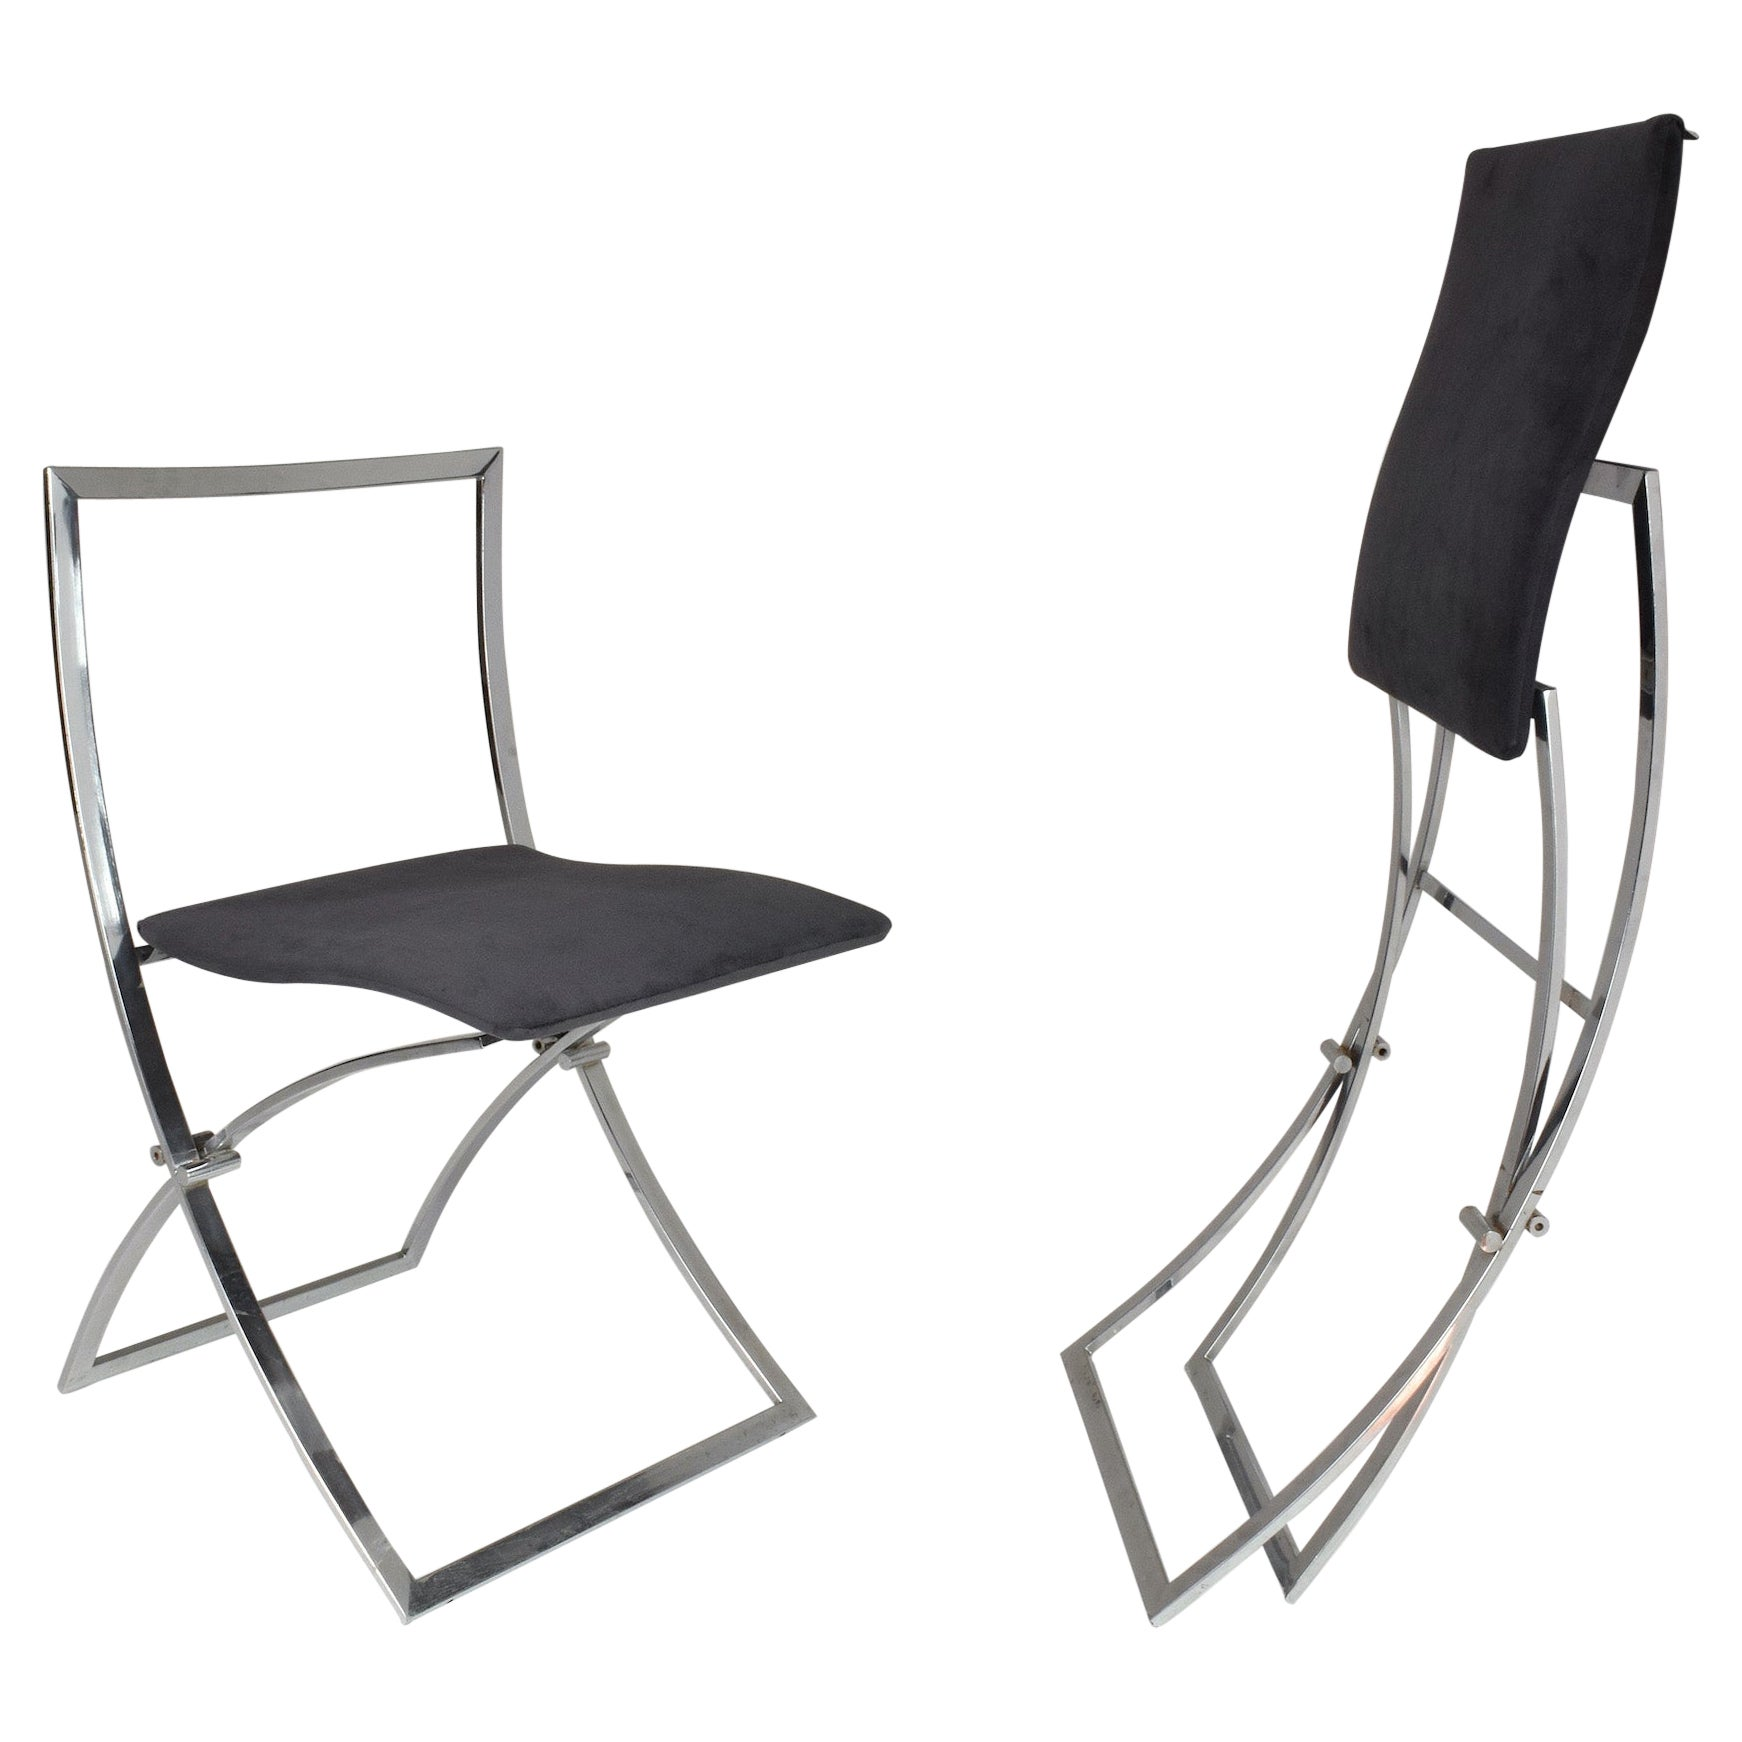 1970's Italian Marcello Cuneo Chrome Foldable Chairs